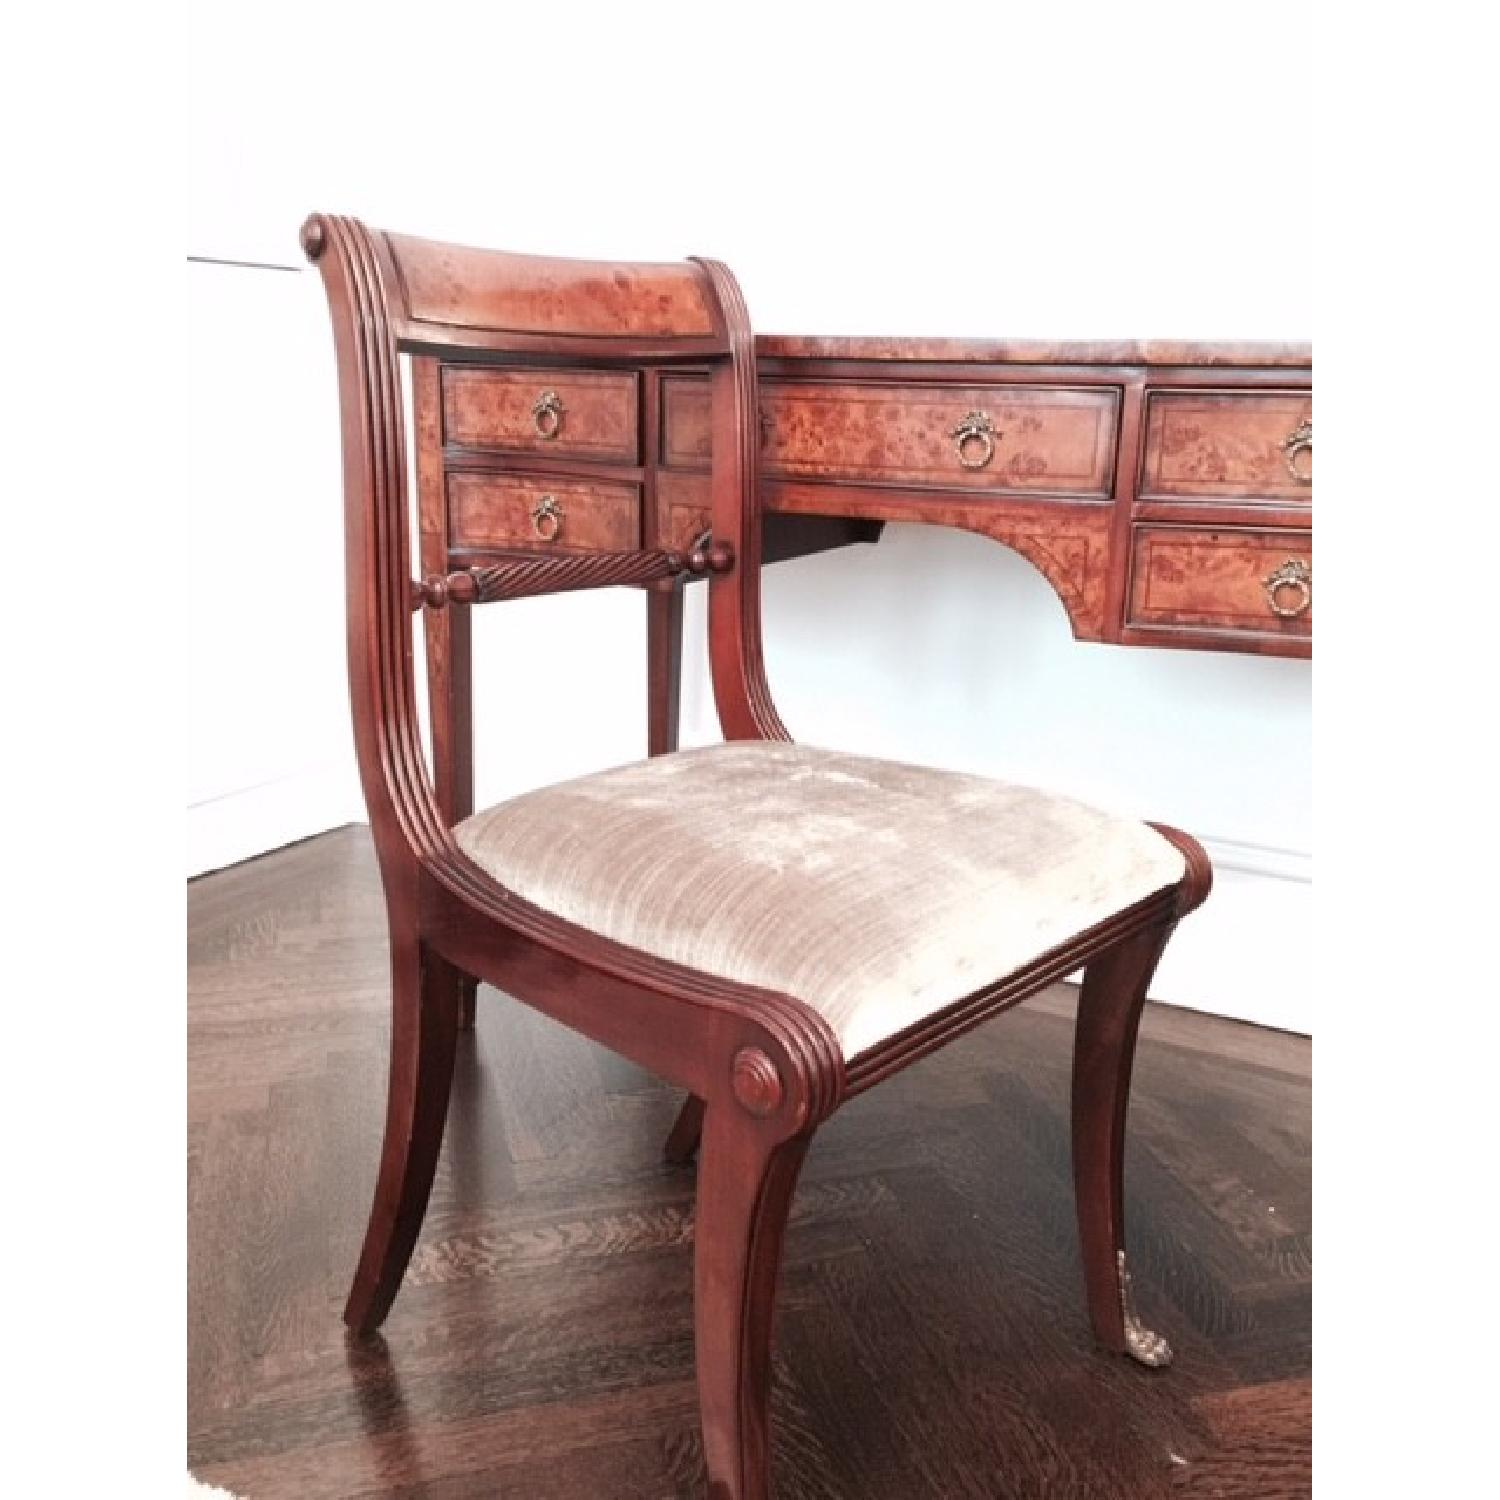 Two-Tone Wood Desk/Vanity and Chair - image-2